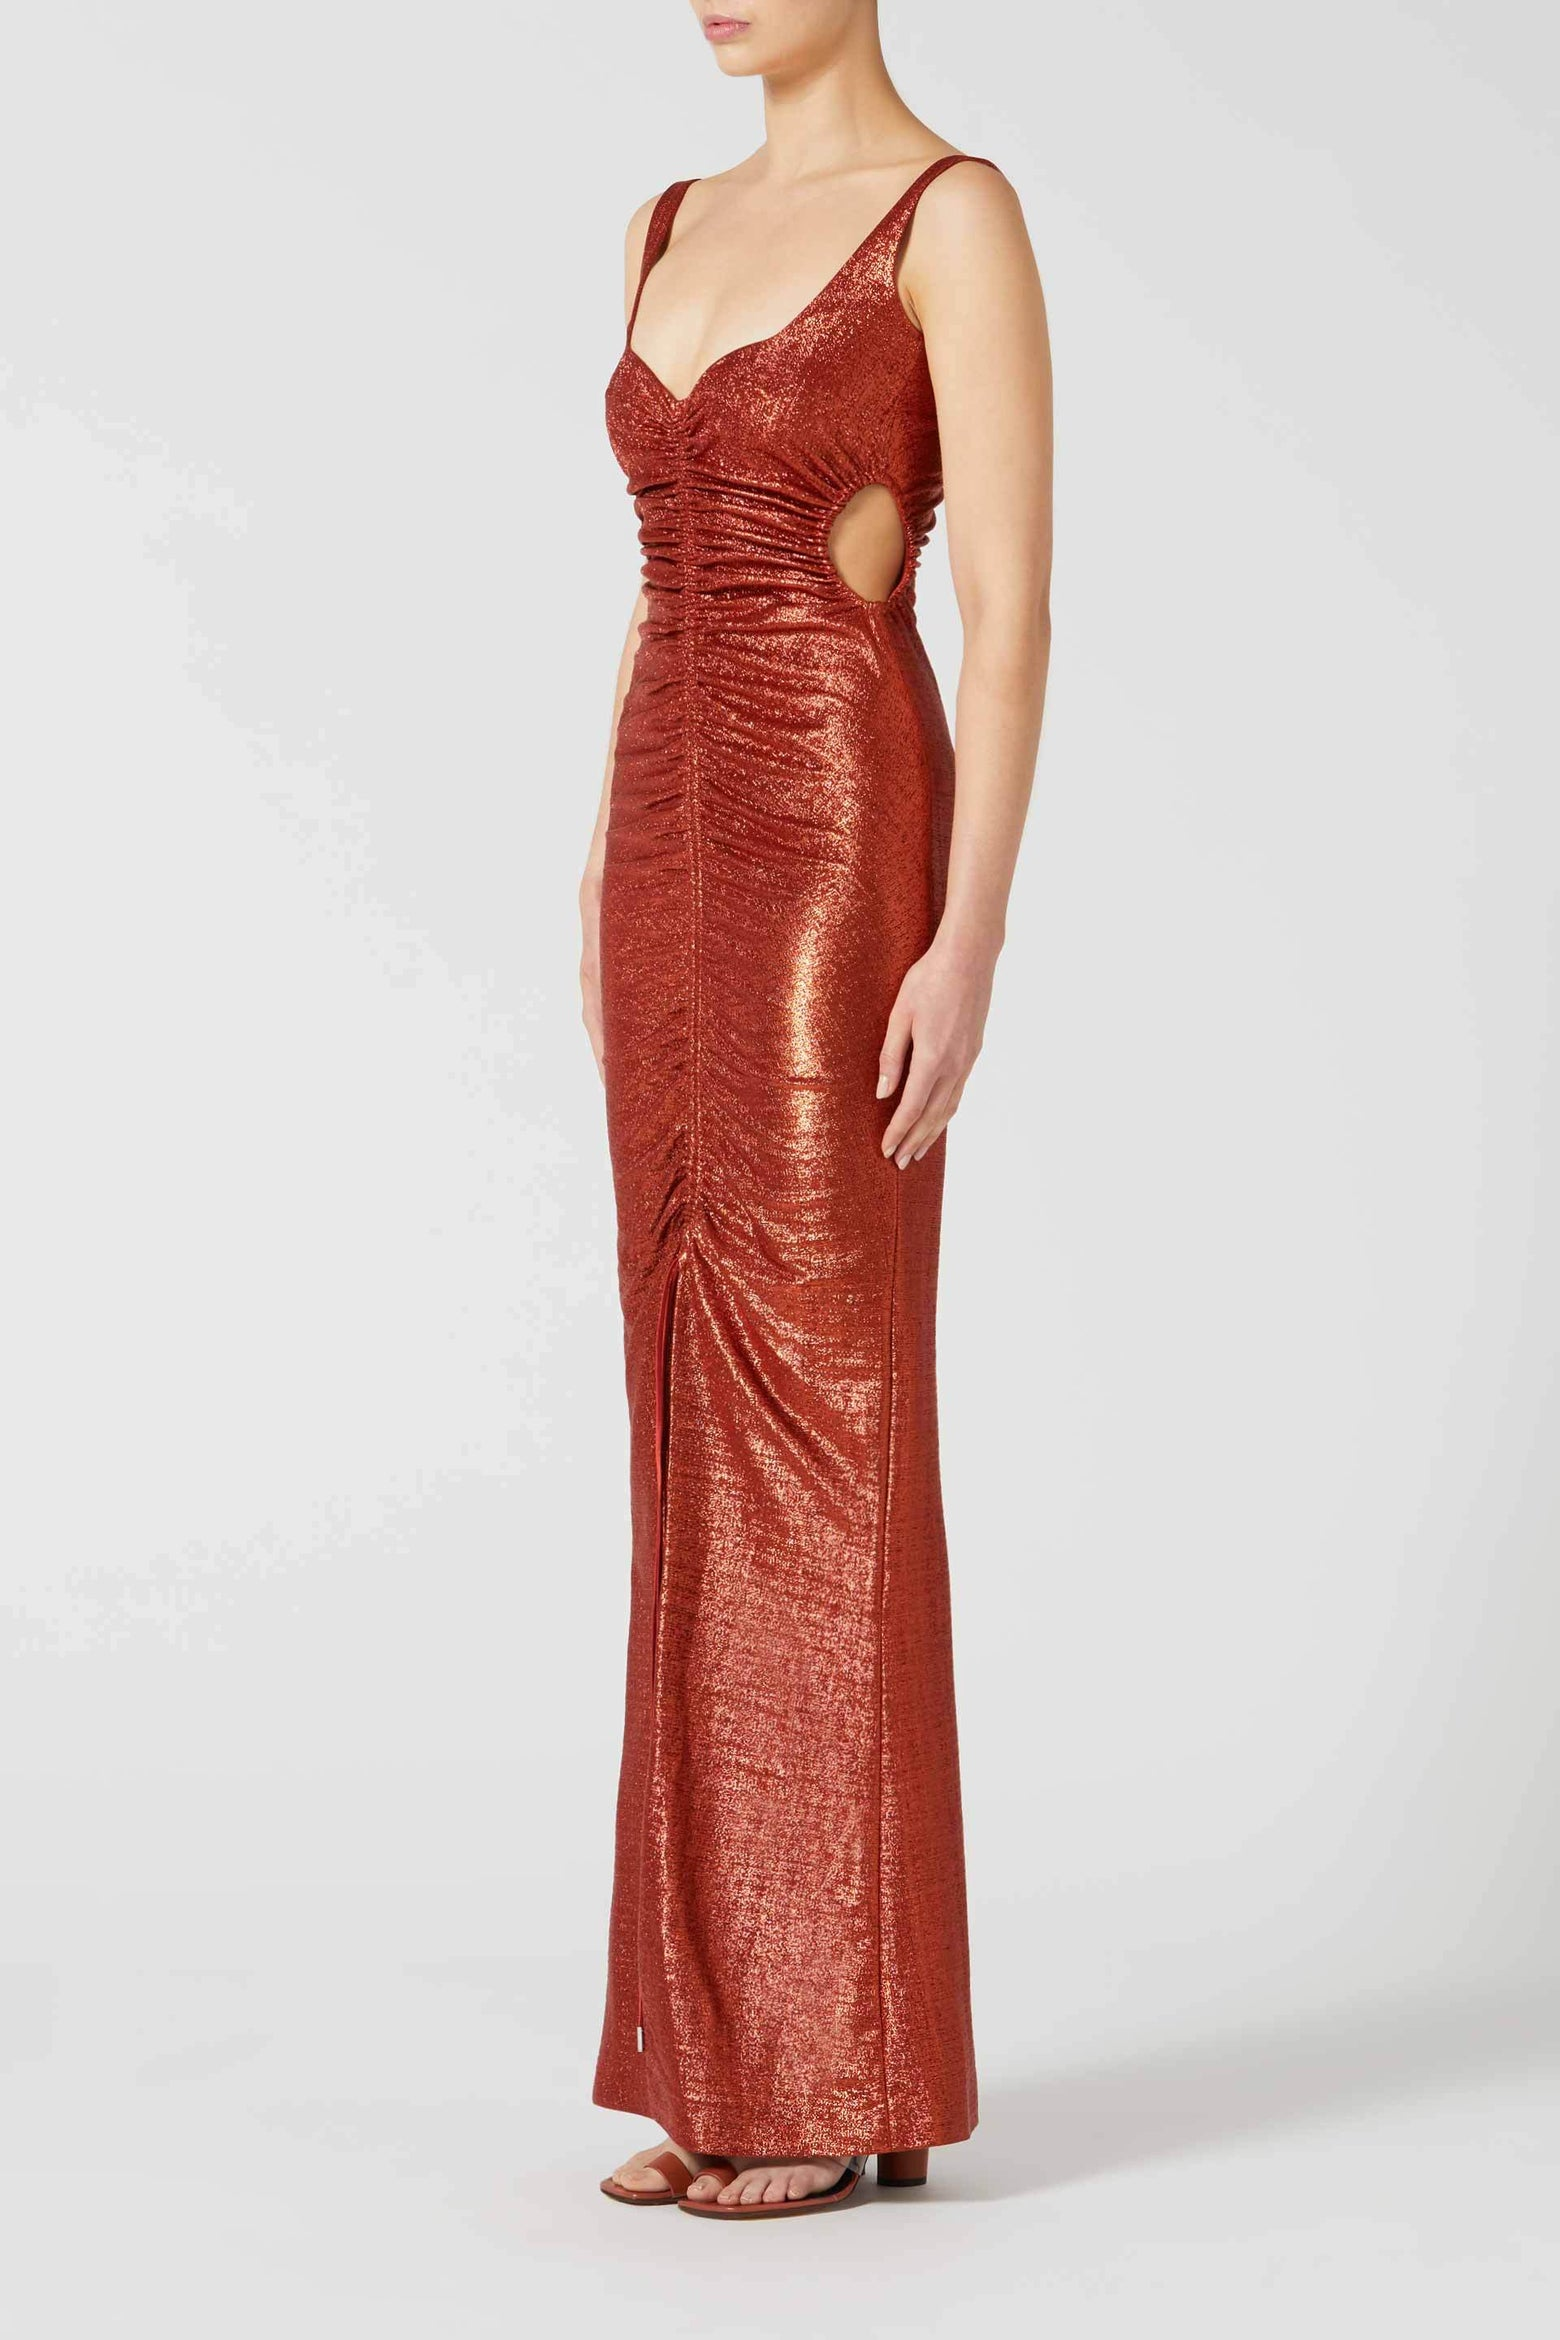 Sahara Dress - Rust